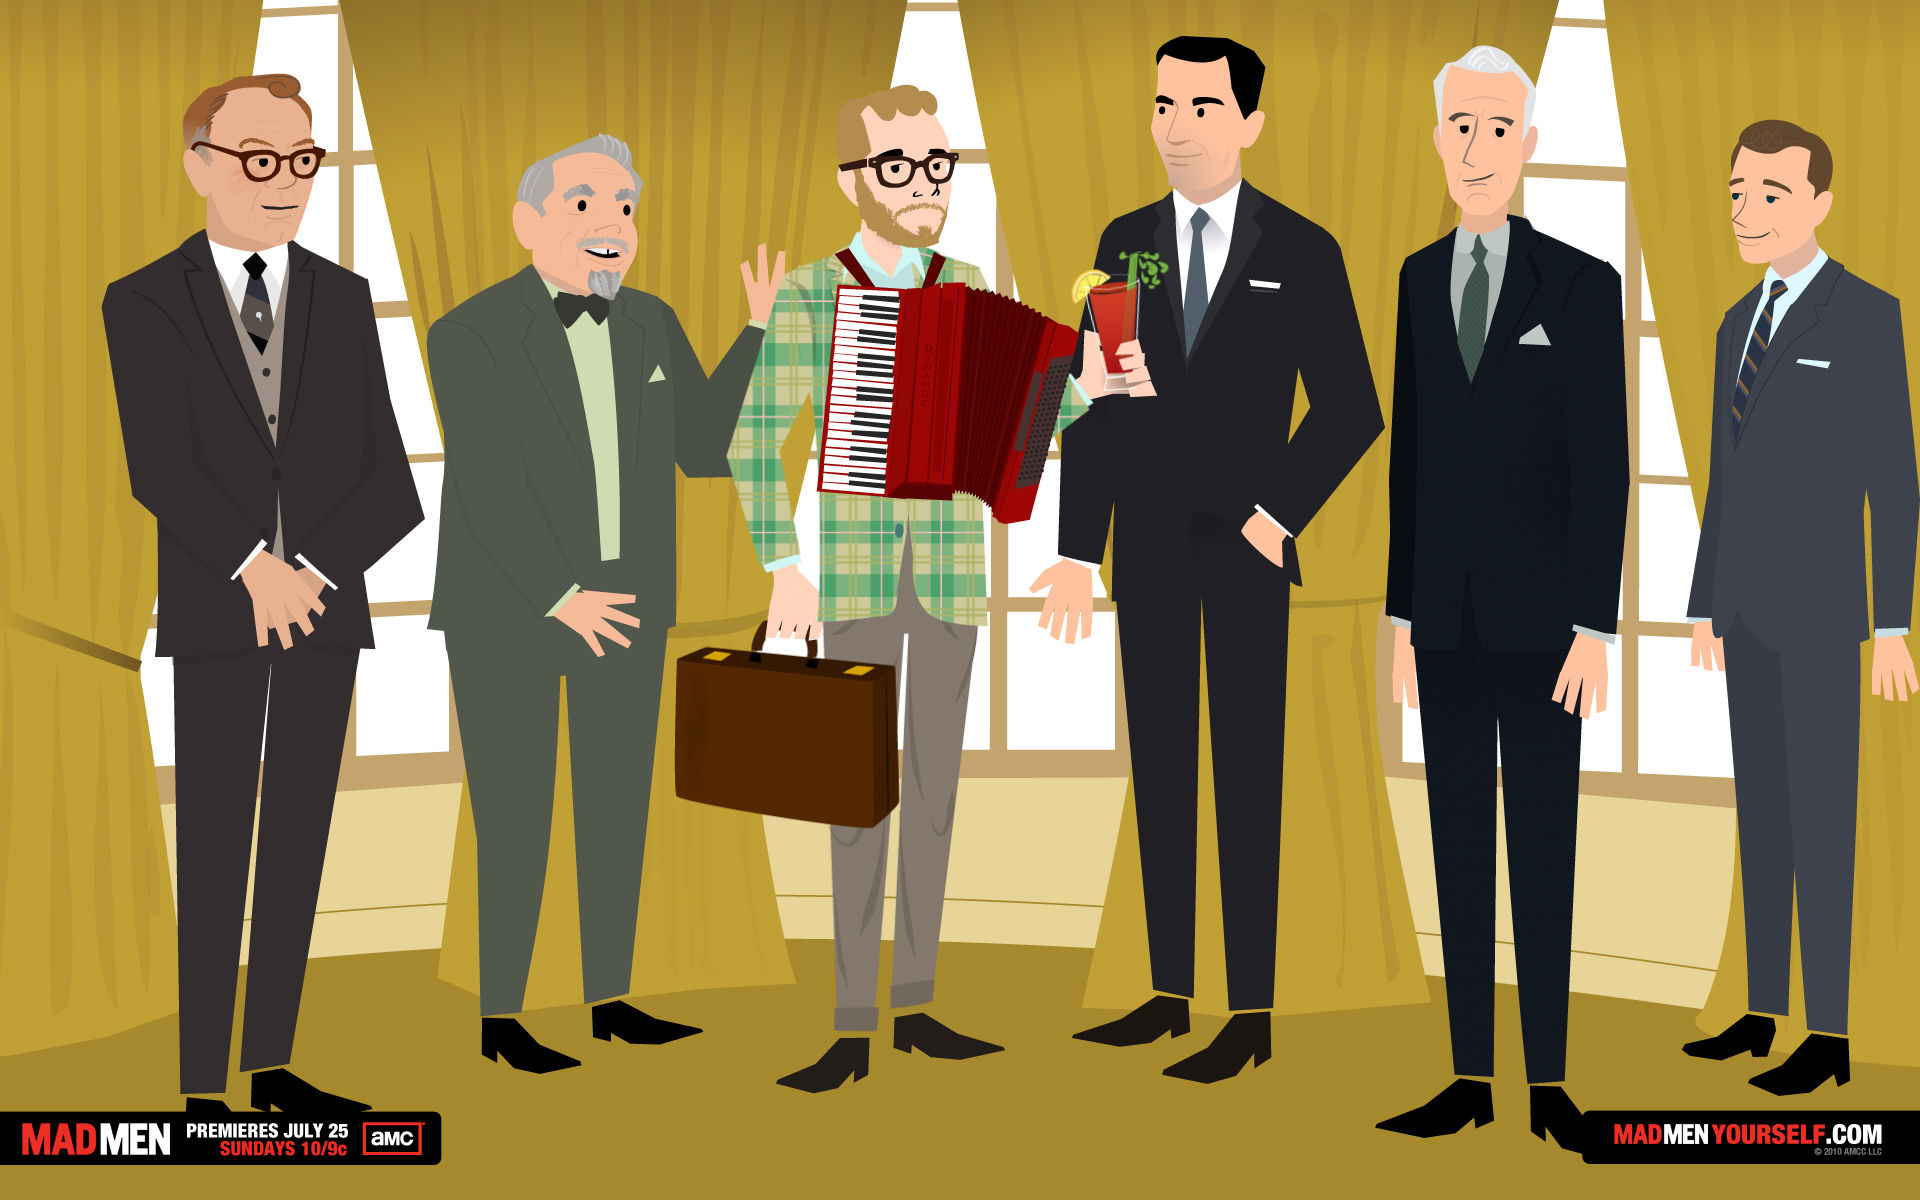 New Season of Mad Men Means a New Mad Men Yourself You!